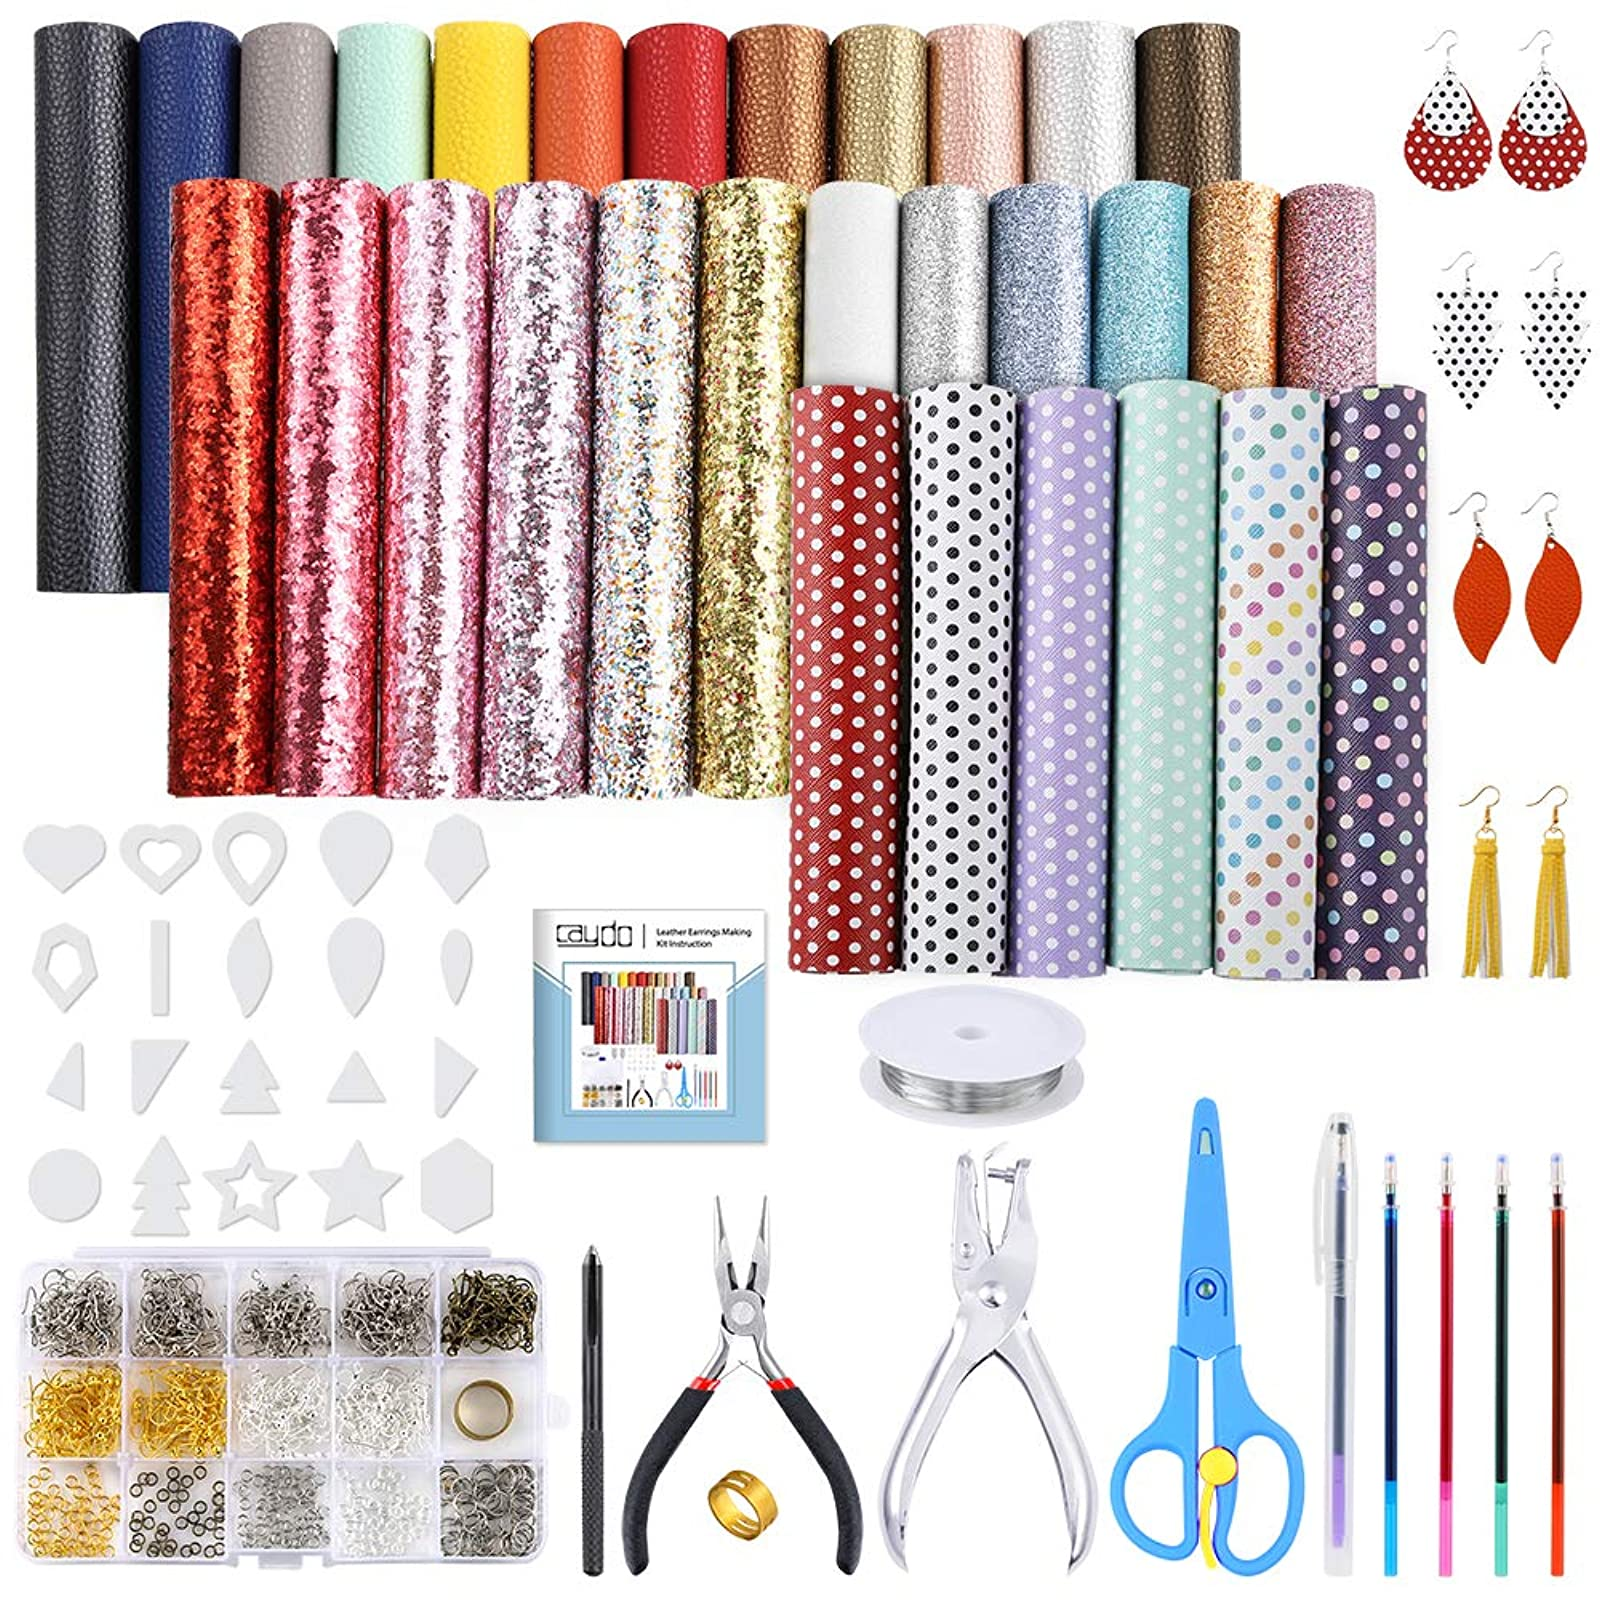 Instructions Caydo 16 Pieces 6.3 x 8.3 Embossed Leather Earring Making Kit with 4 Style Leather Sheet Jump Rings for Earrings Making Supplies Earring Hooks